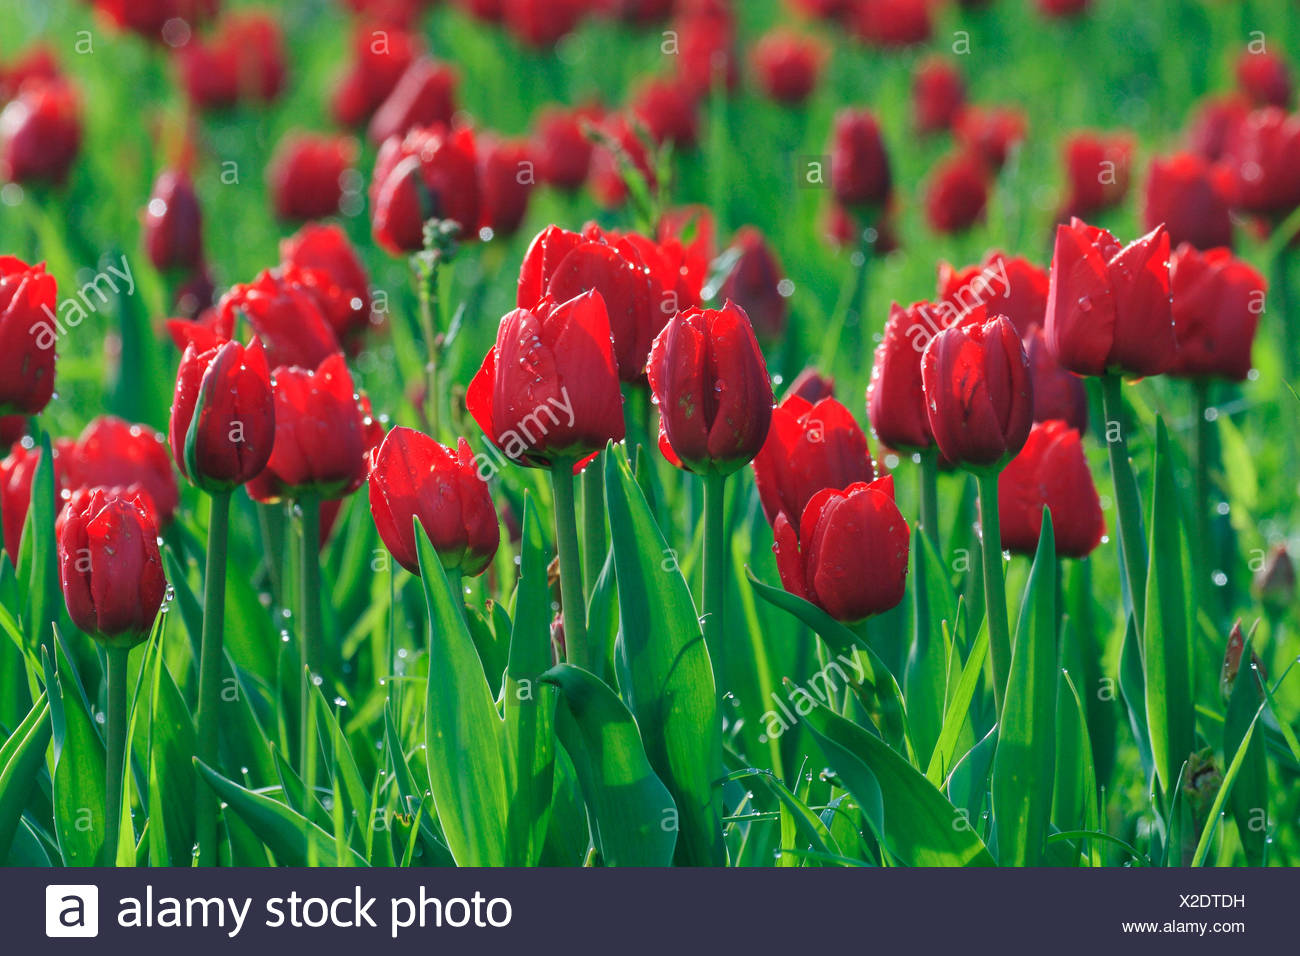 Tulipa tulip flower flowers spring meadow flower meadow flowers meadow colored different colors red loudly - Stock Image